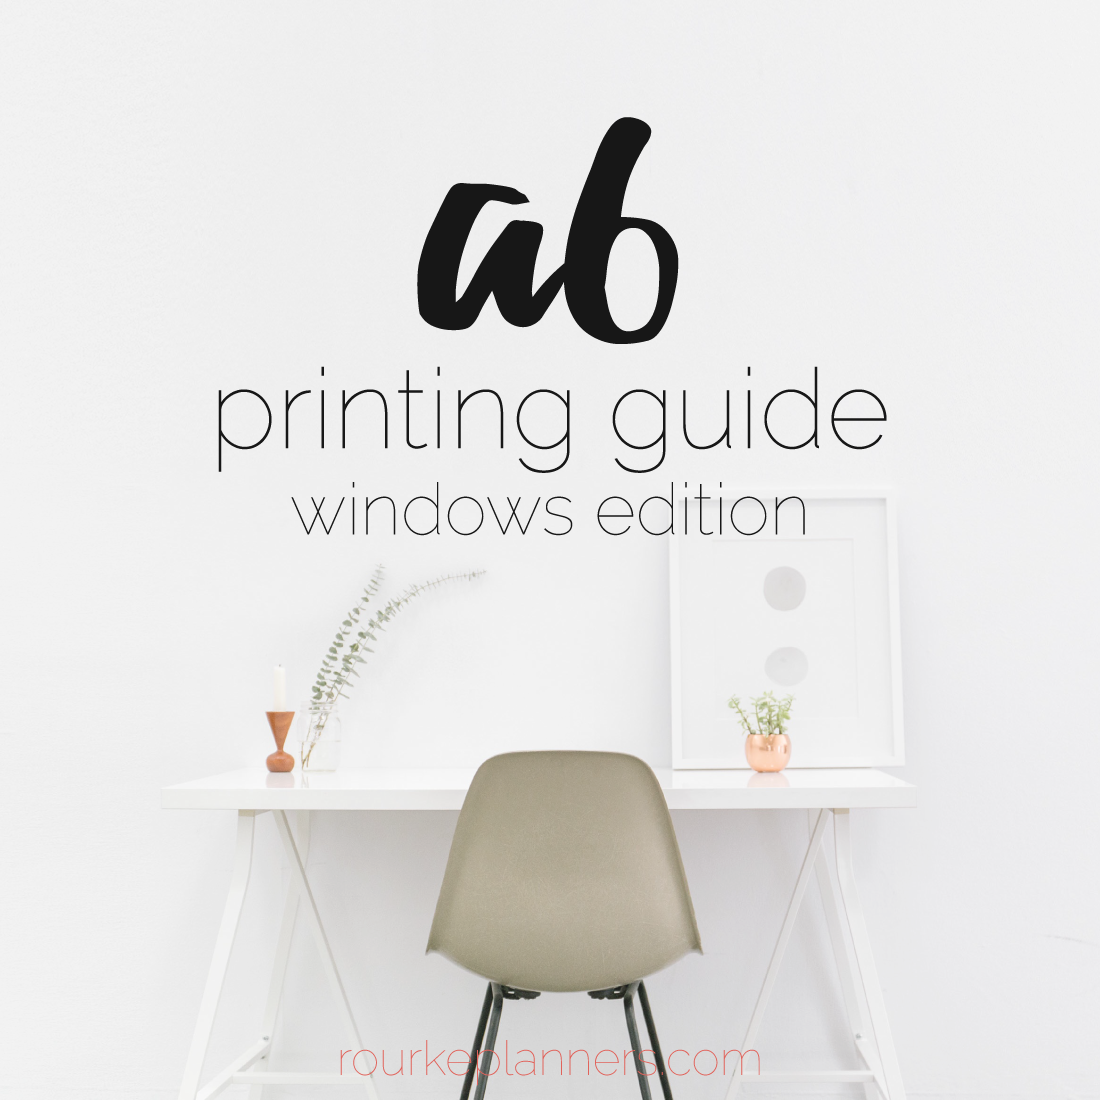 How to Print A6 Size Pages on Windows | Rourke Planners